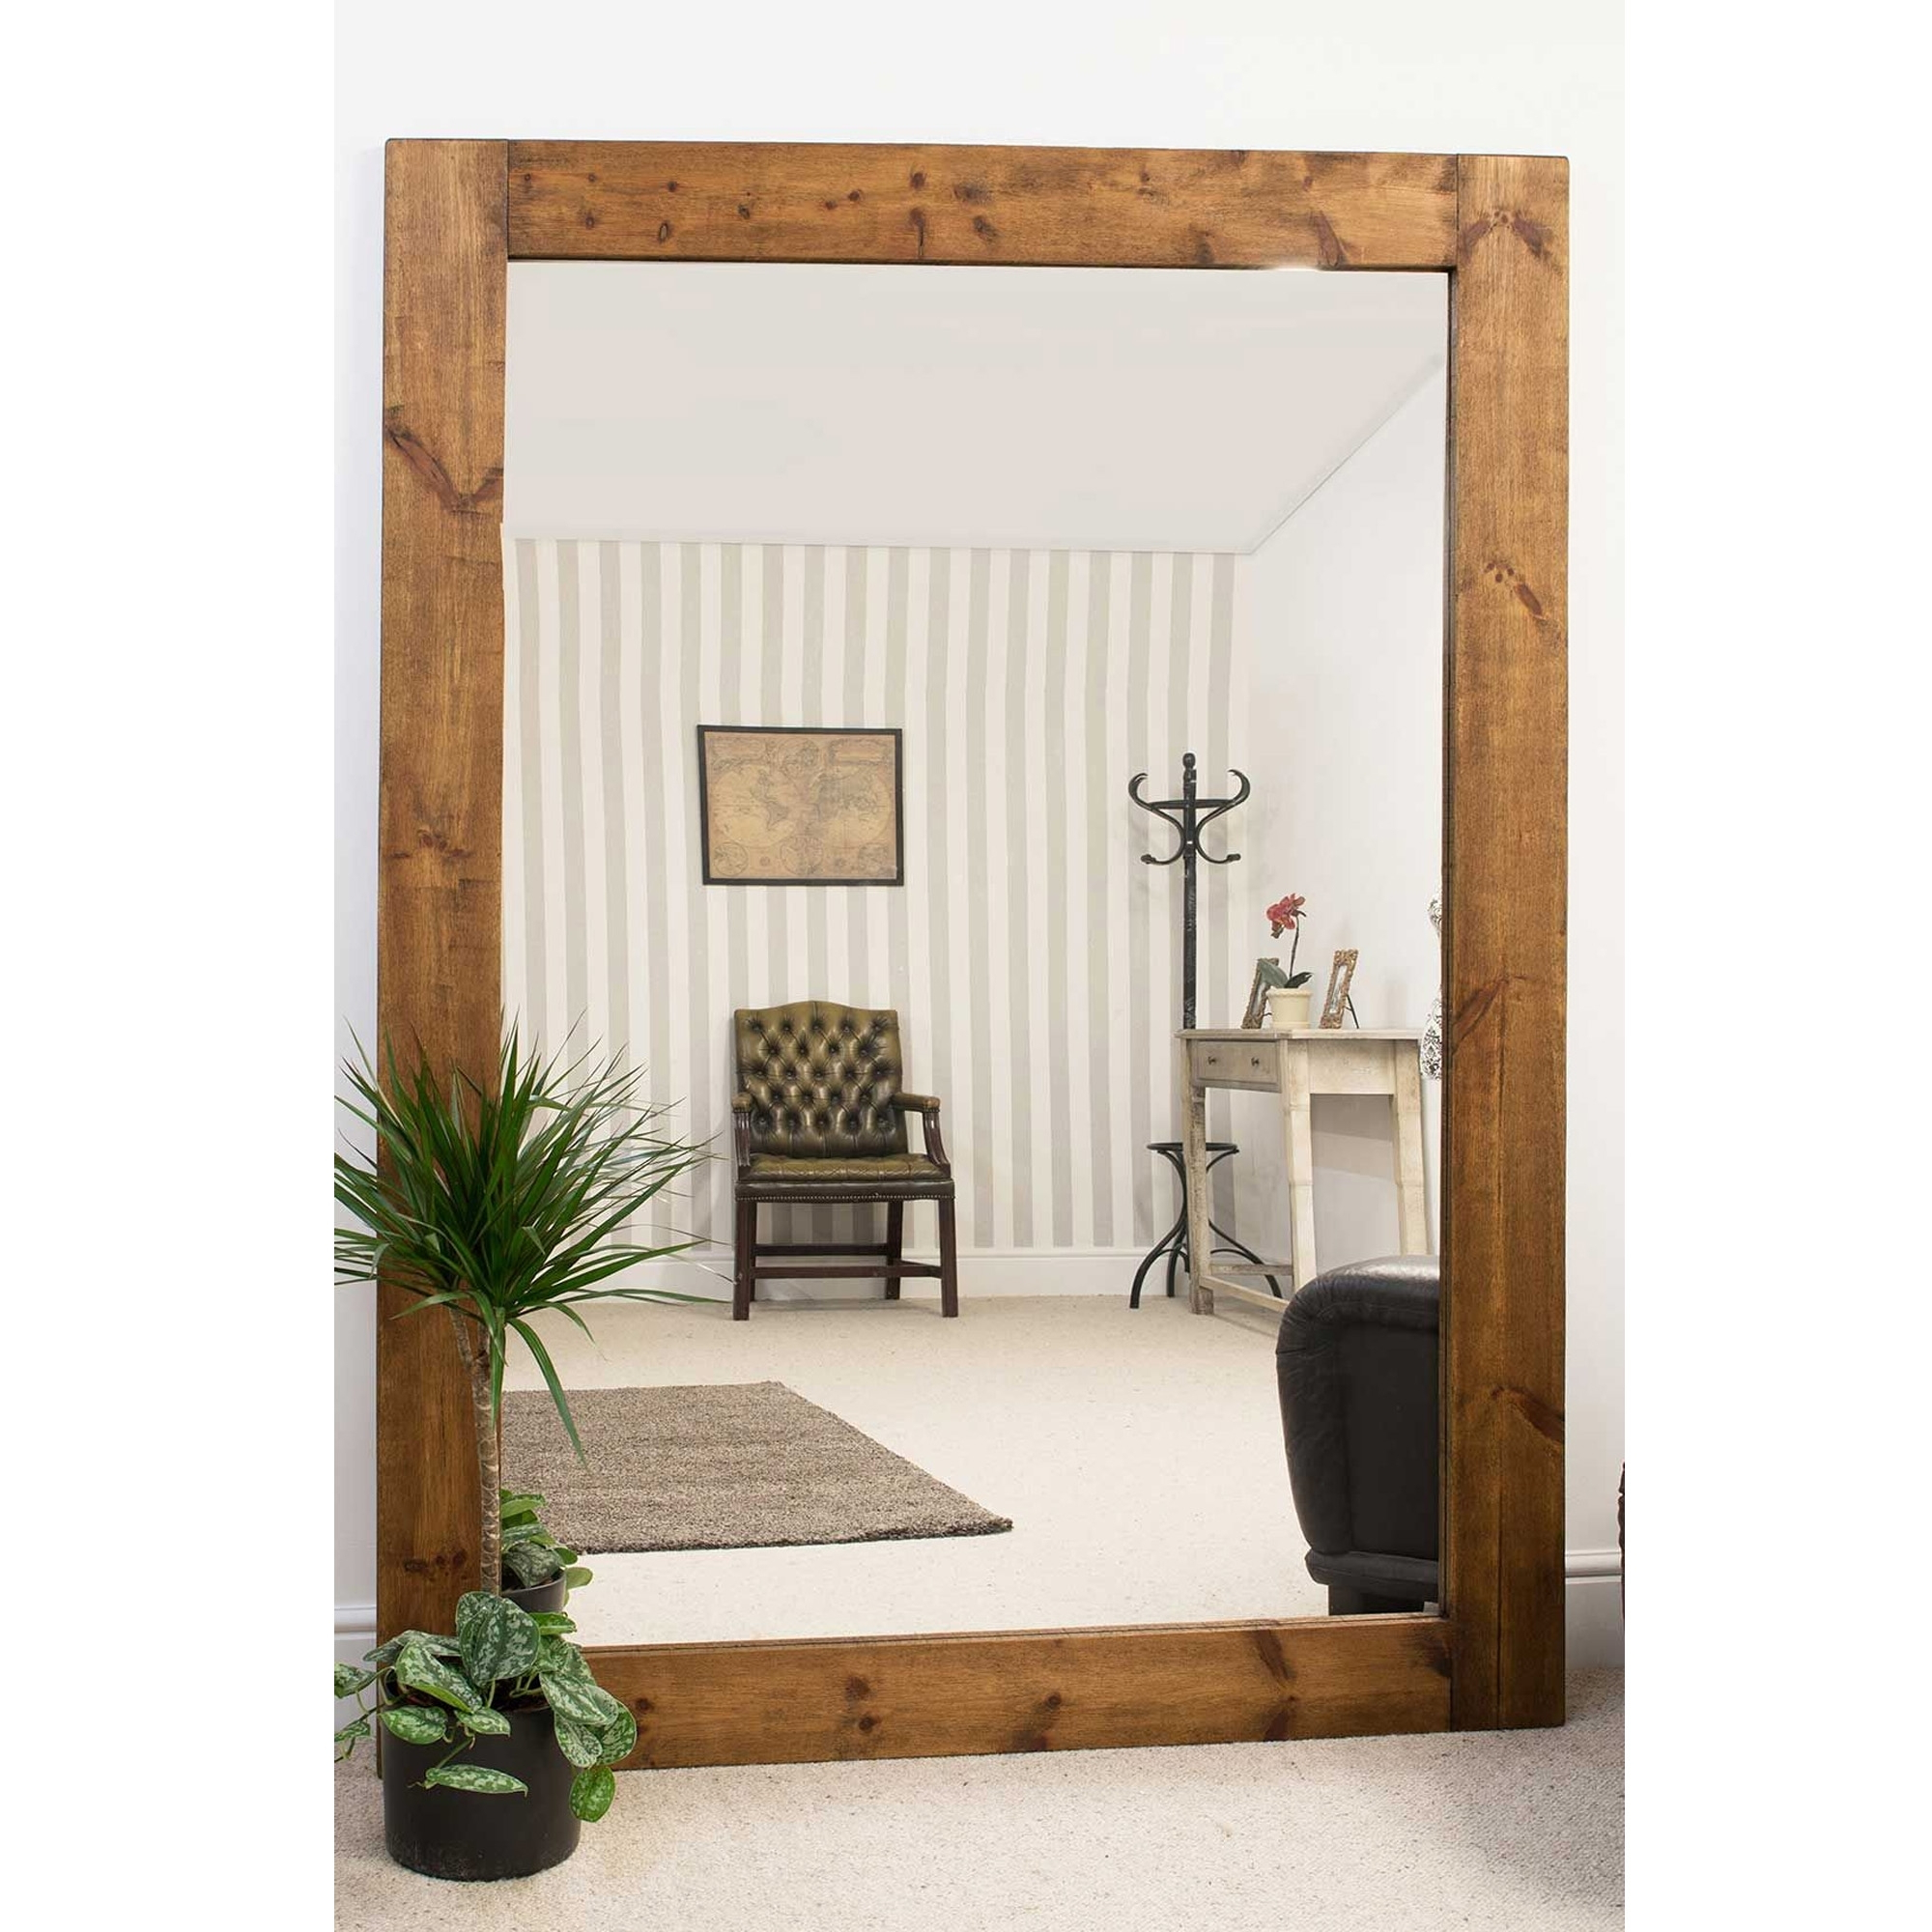 Large Wooden Wall Mirror Regarding 2020 Large Wooden Wall Mirrors (Gallery 1 of 20)